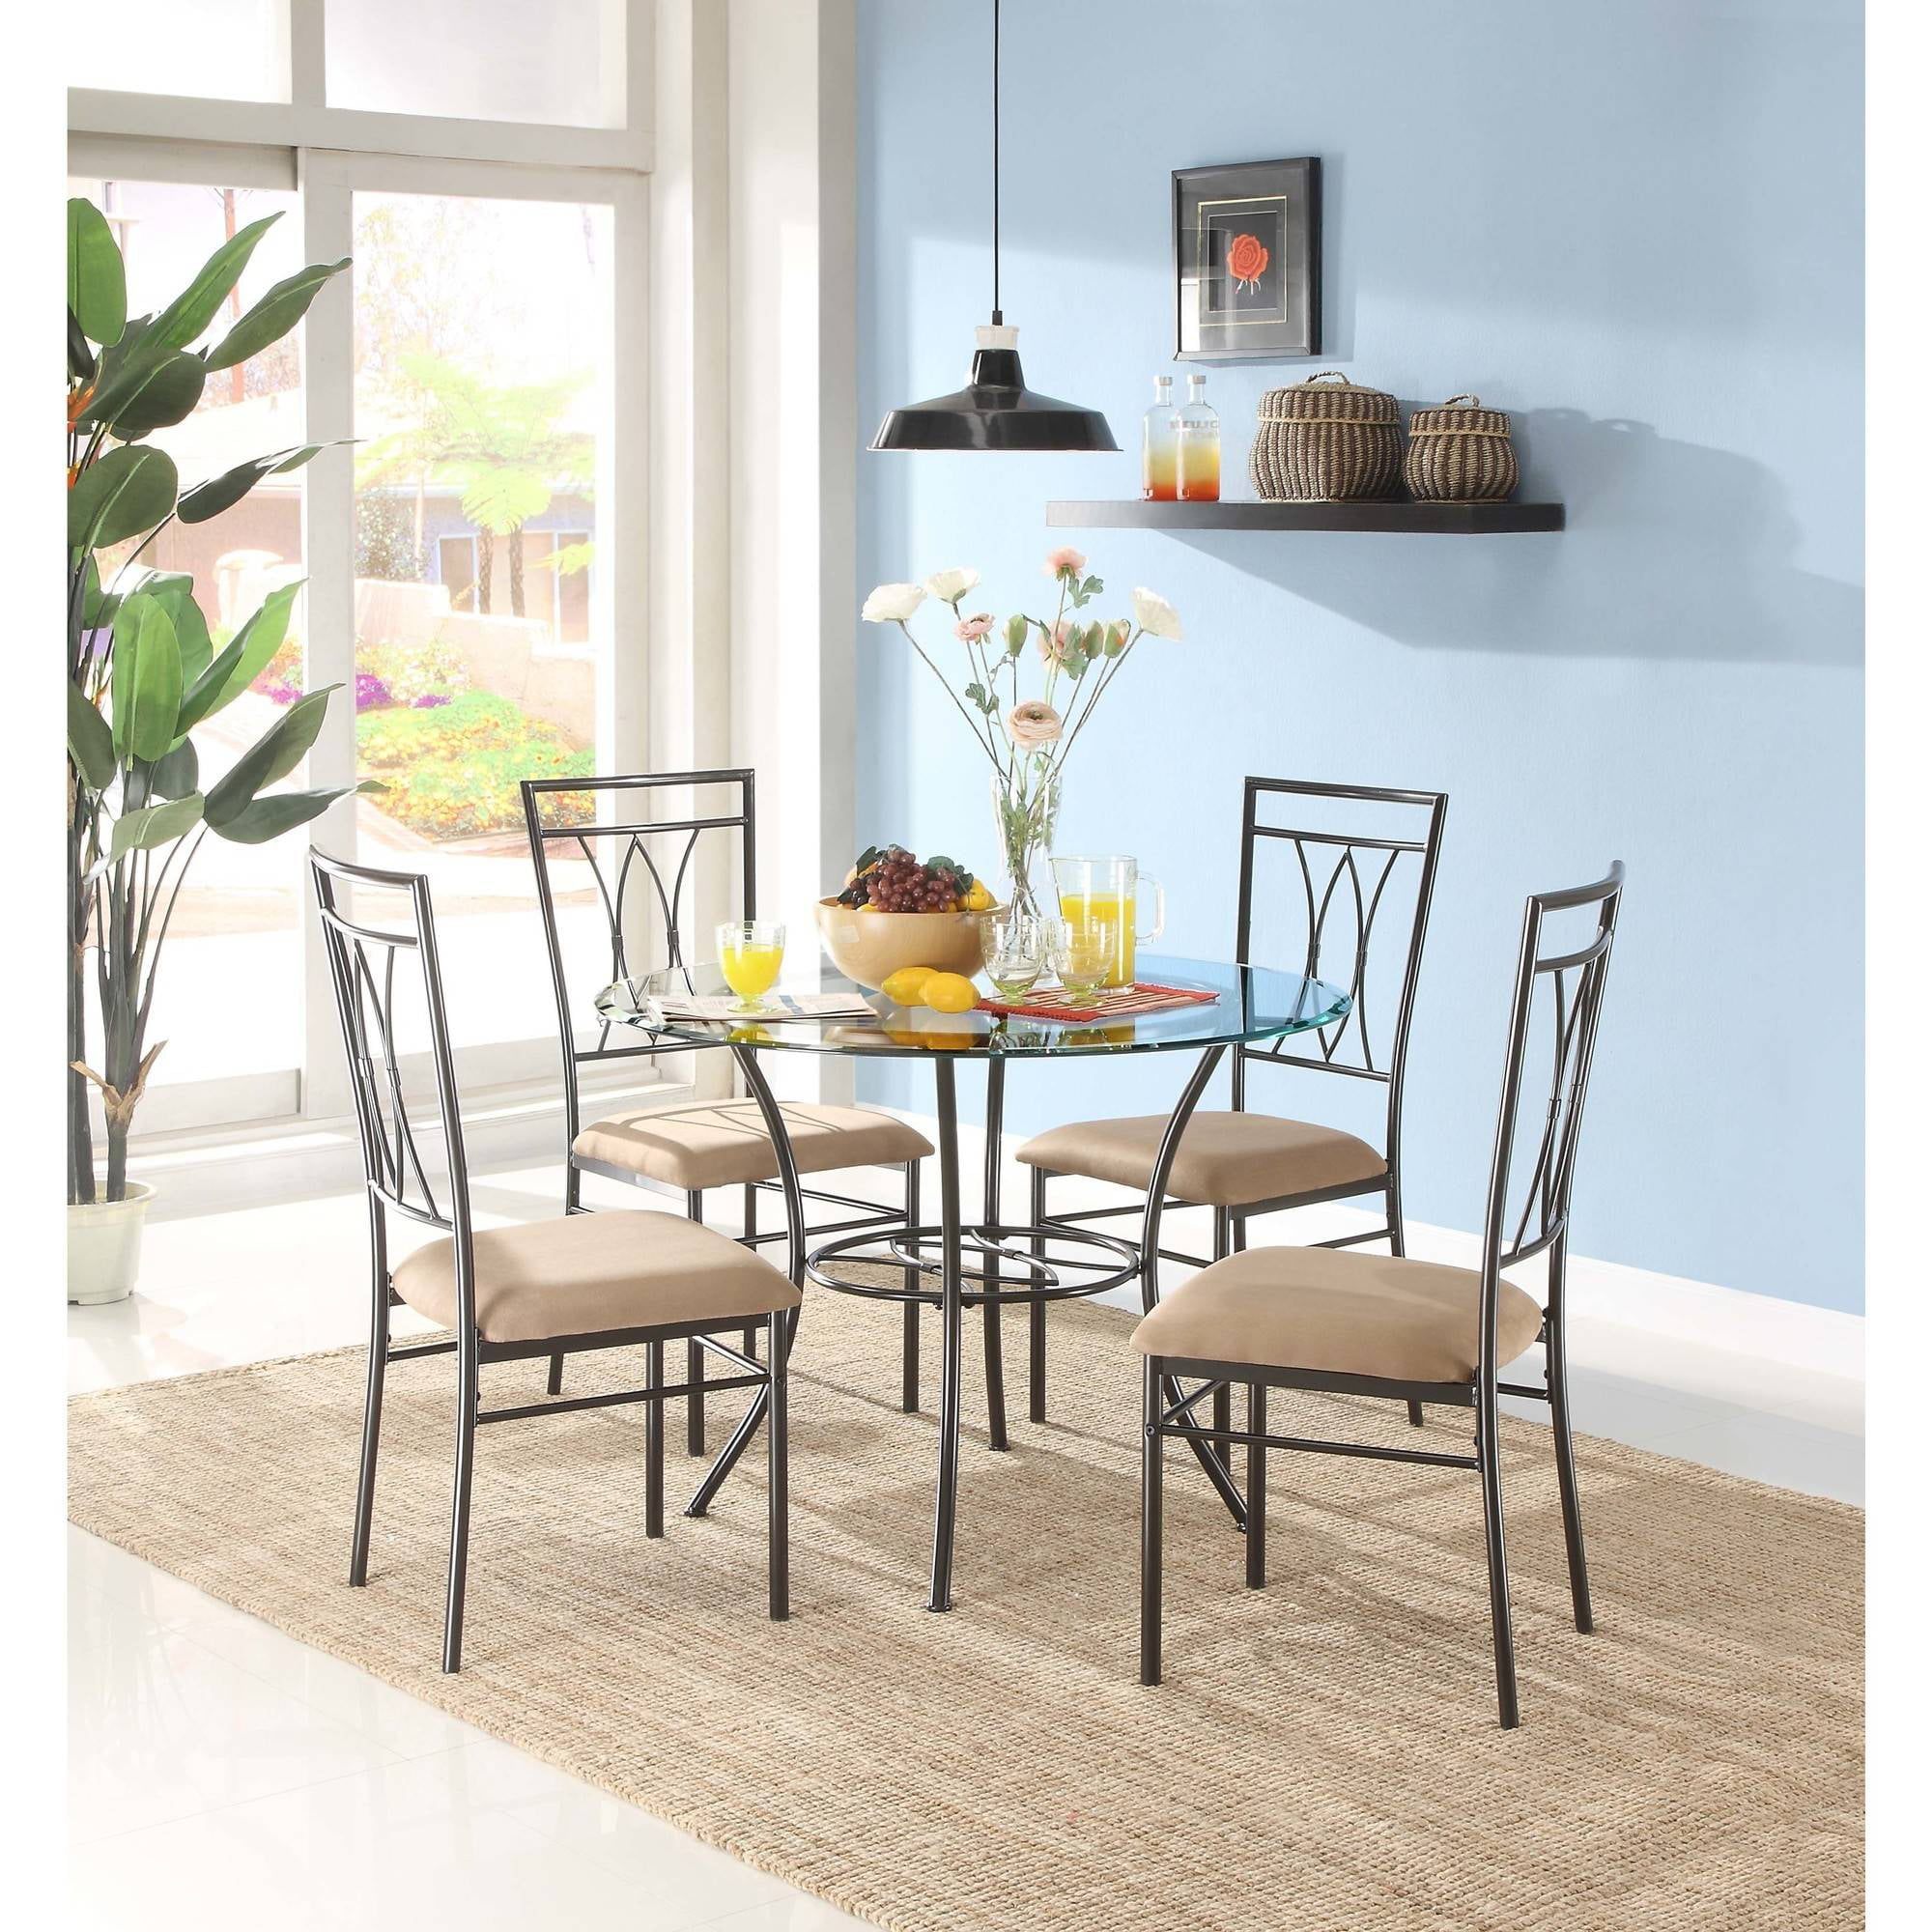 Modern Glass Round Table and Chairs Dining Set Mainstays 5-Piece ...